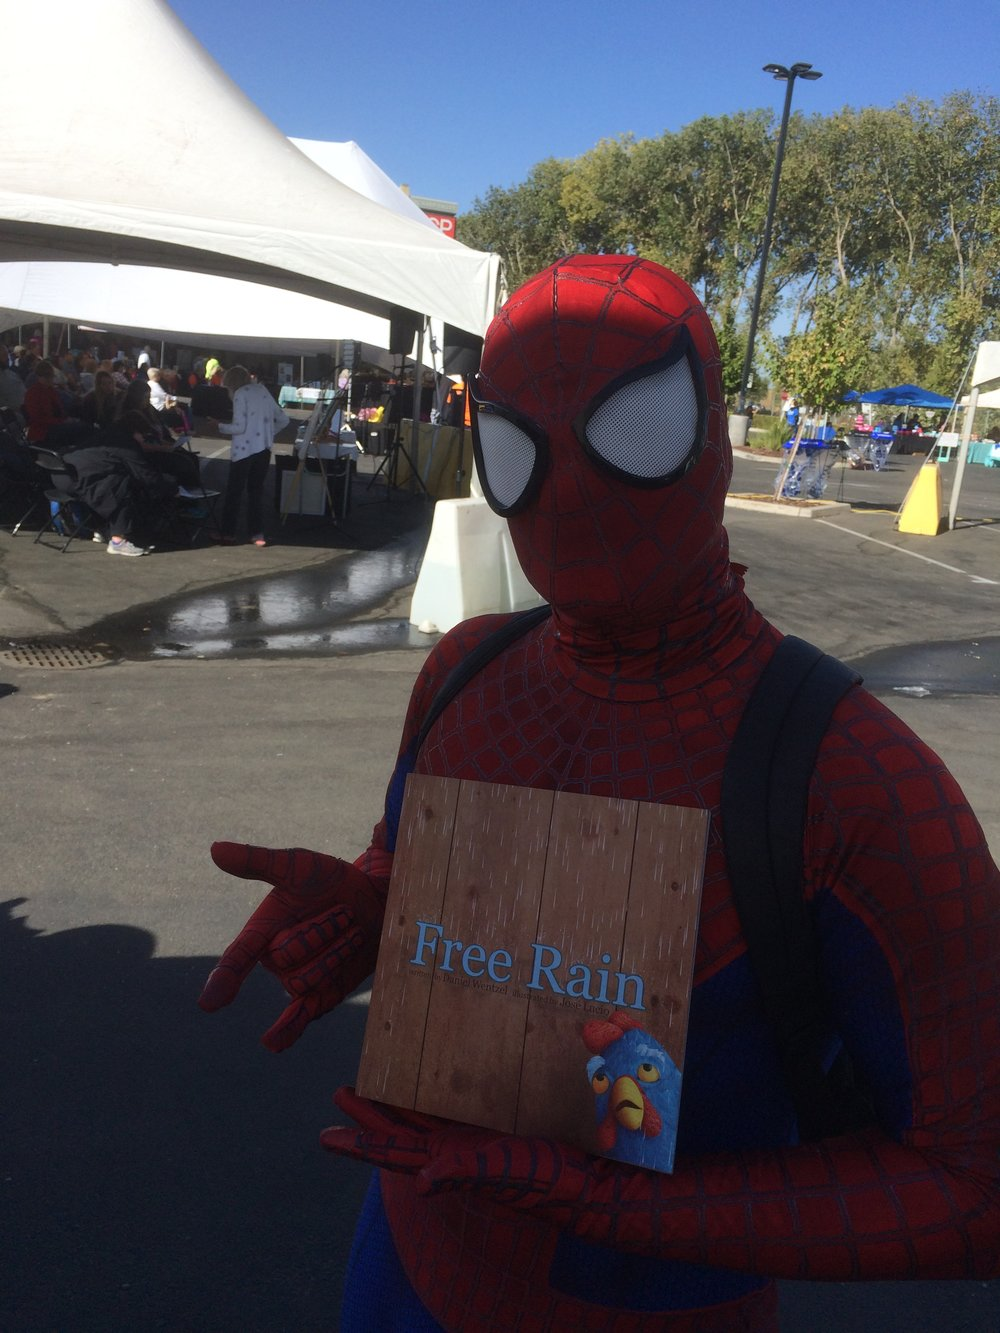 Spiderman's a big fan.